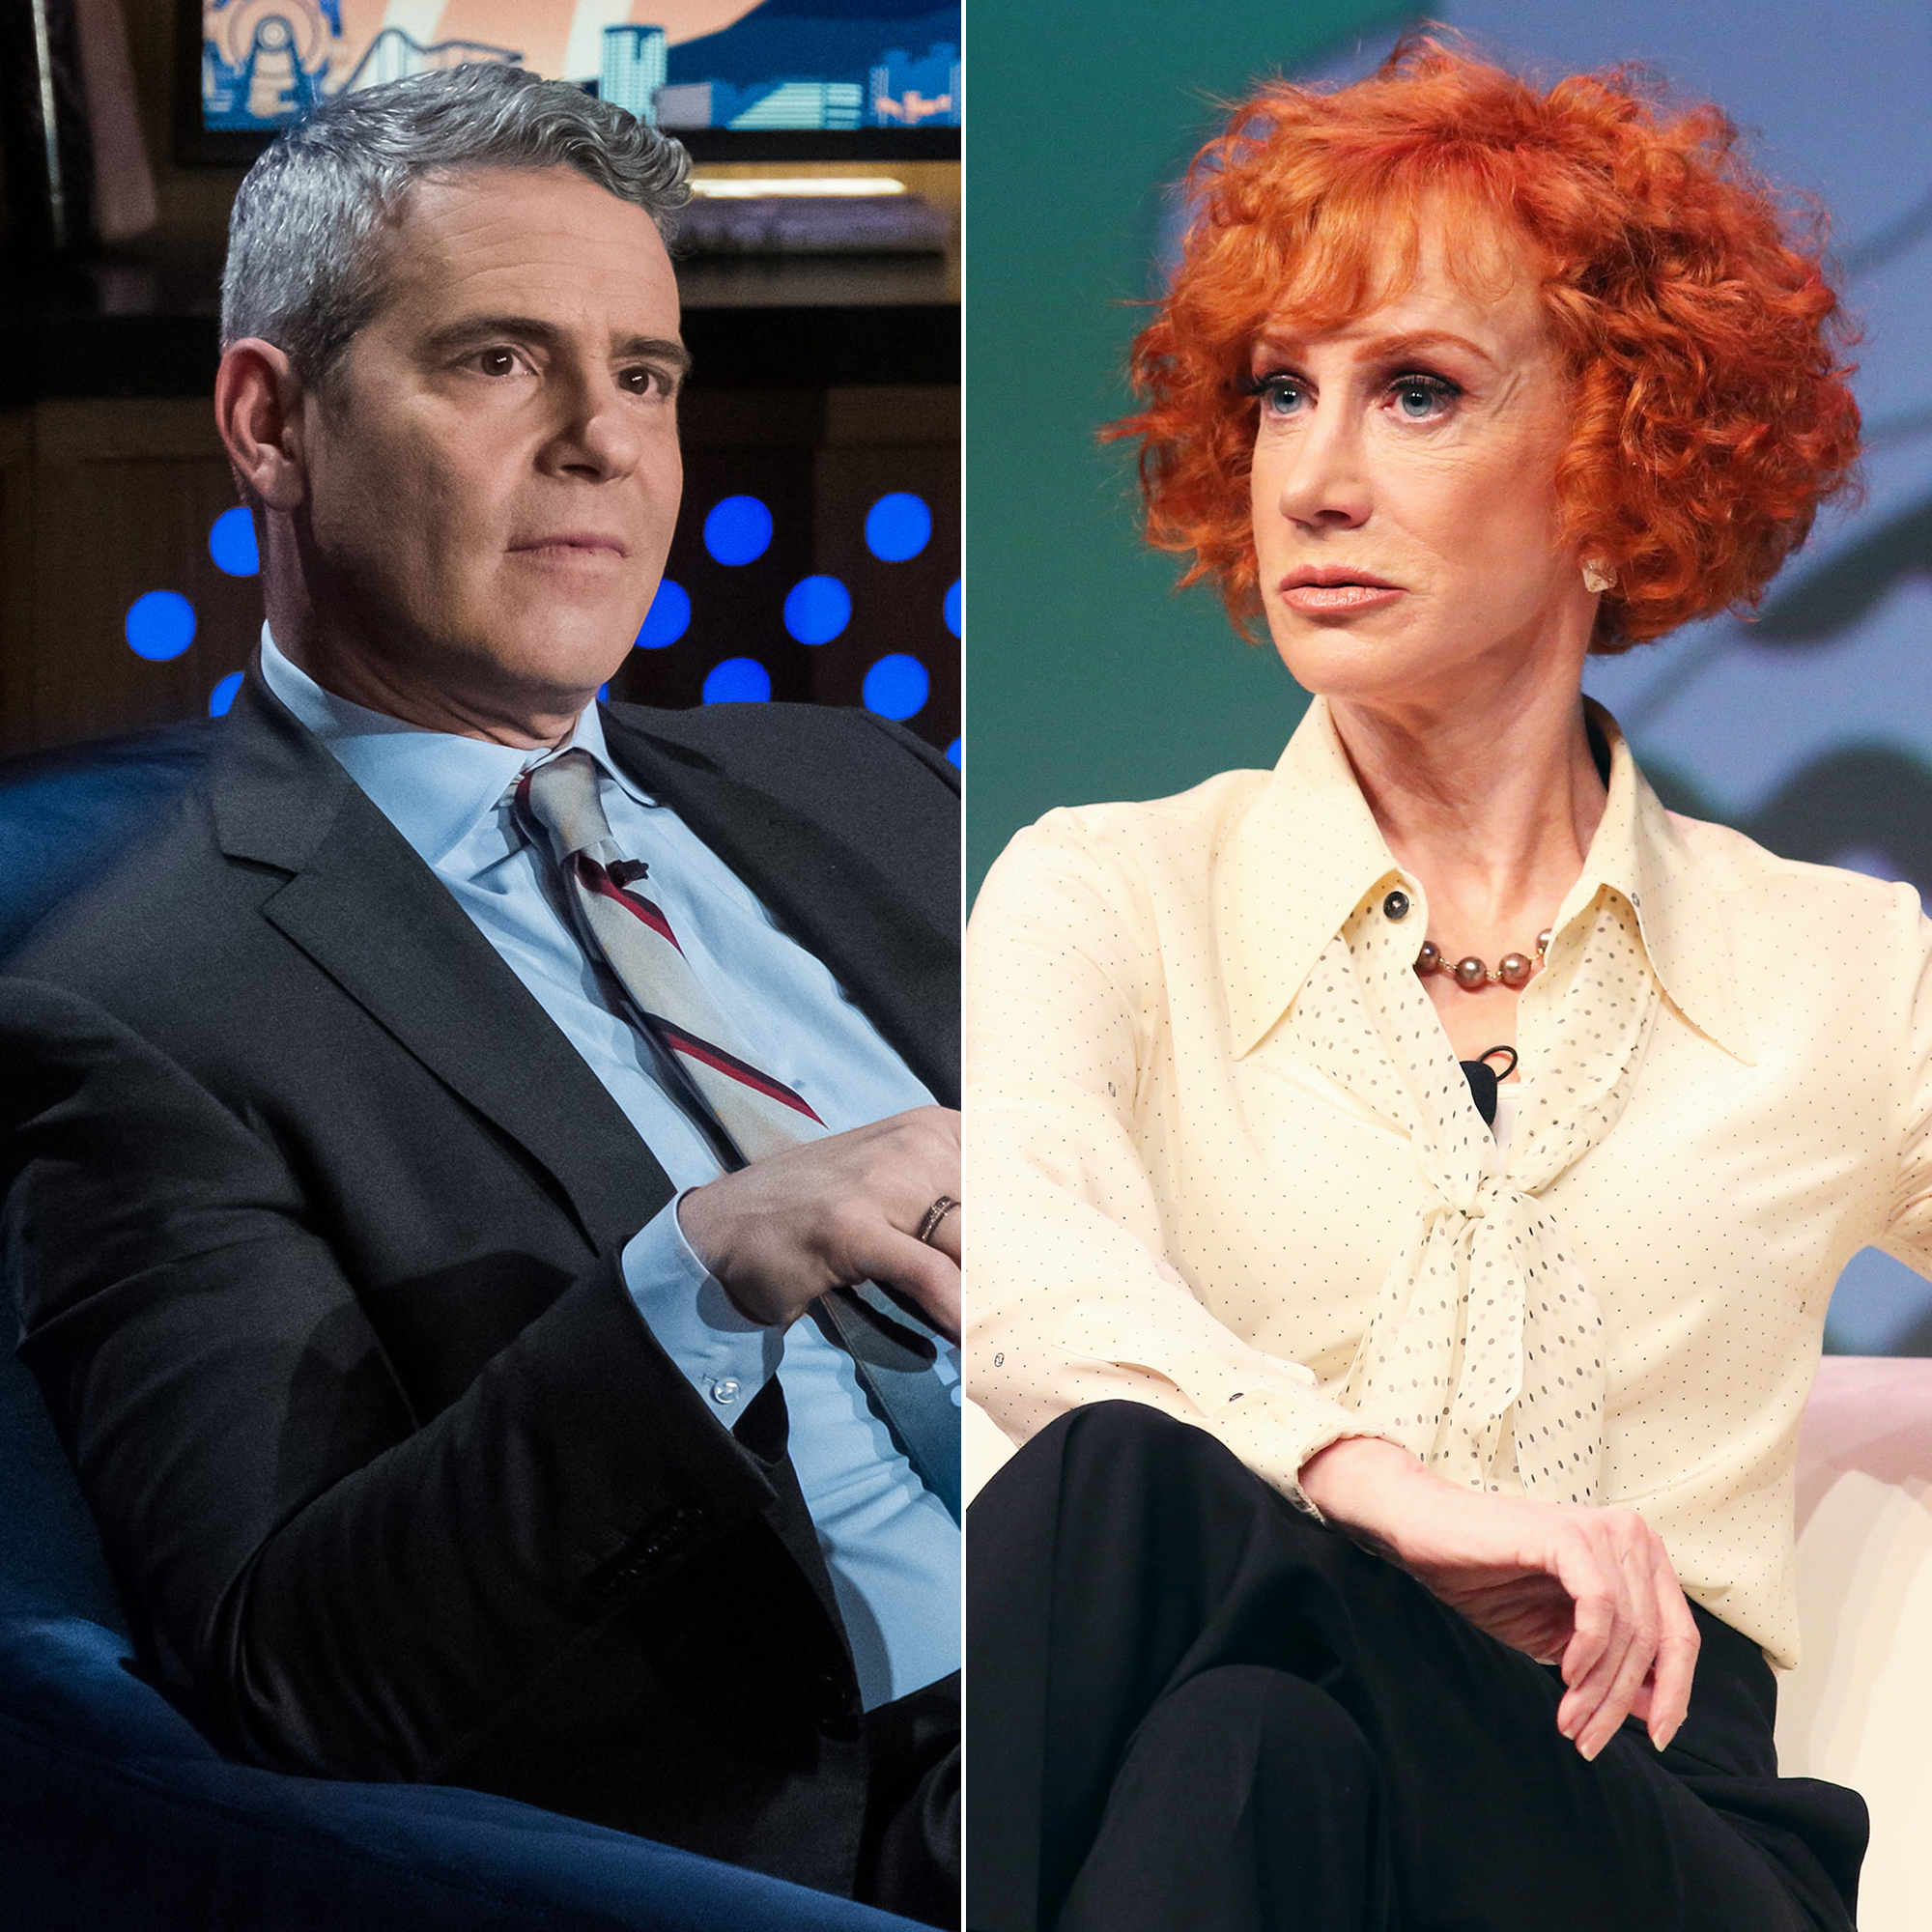 Andy-Cohen-Kathy-Griffin-Astrology-Feud.jpg